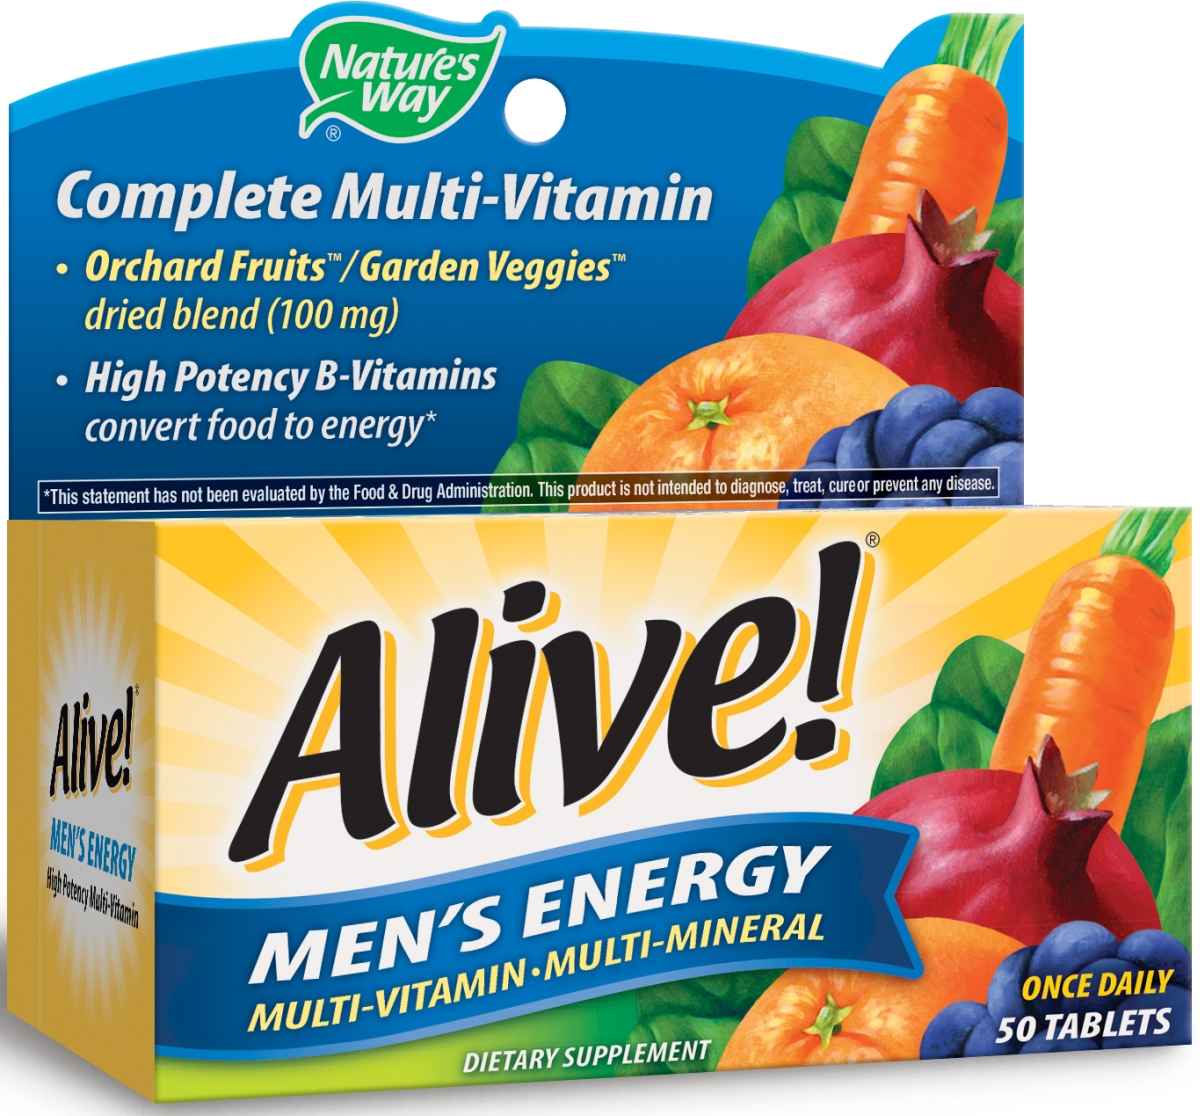 Alive! Men's Energy 50 tabs by Nature's Way